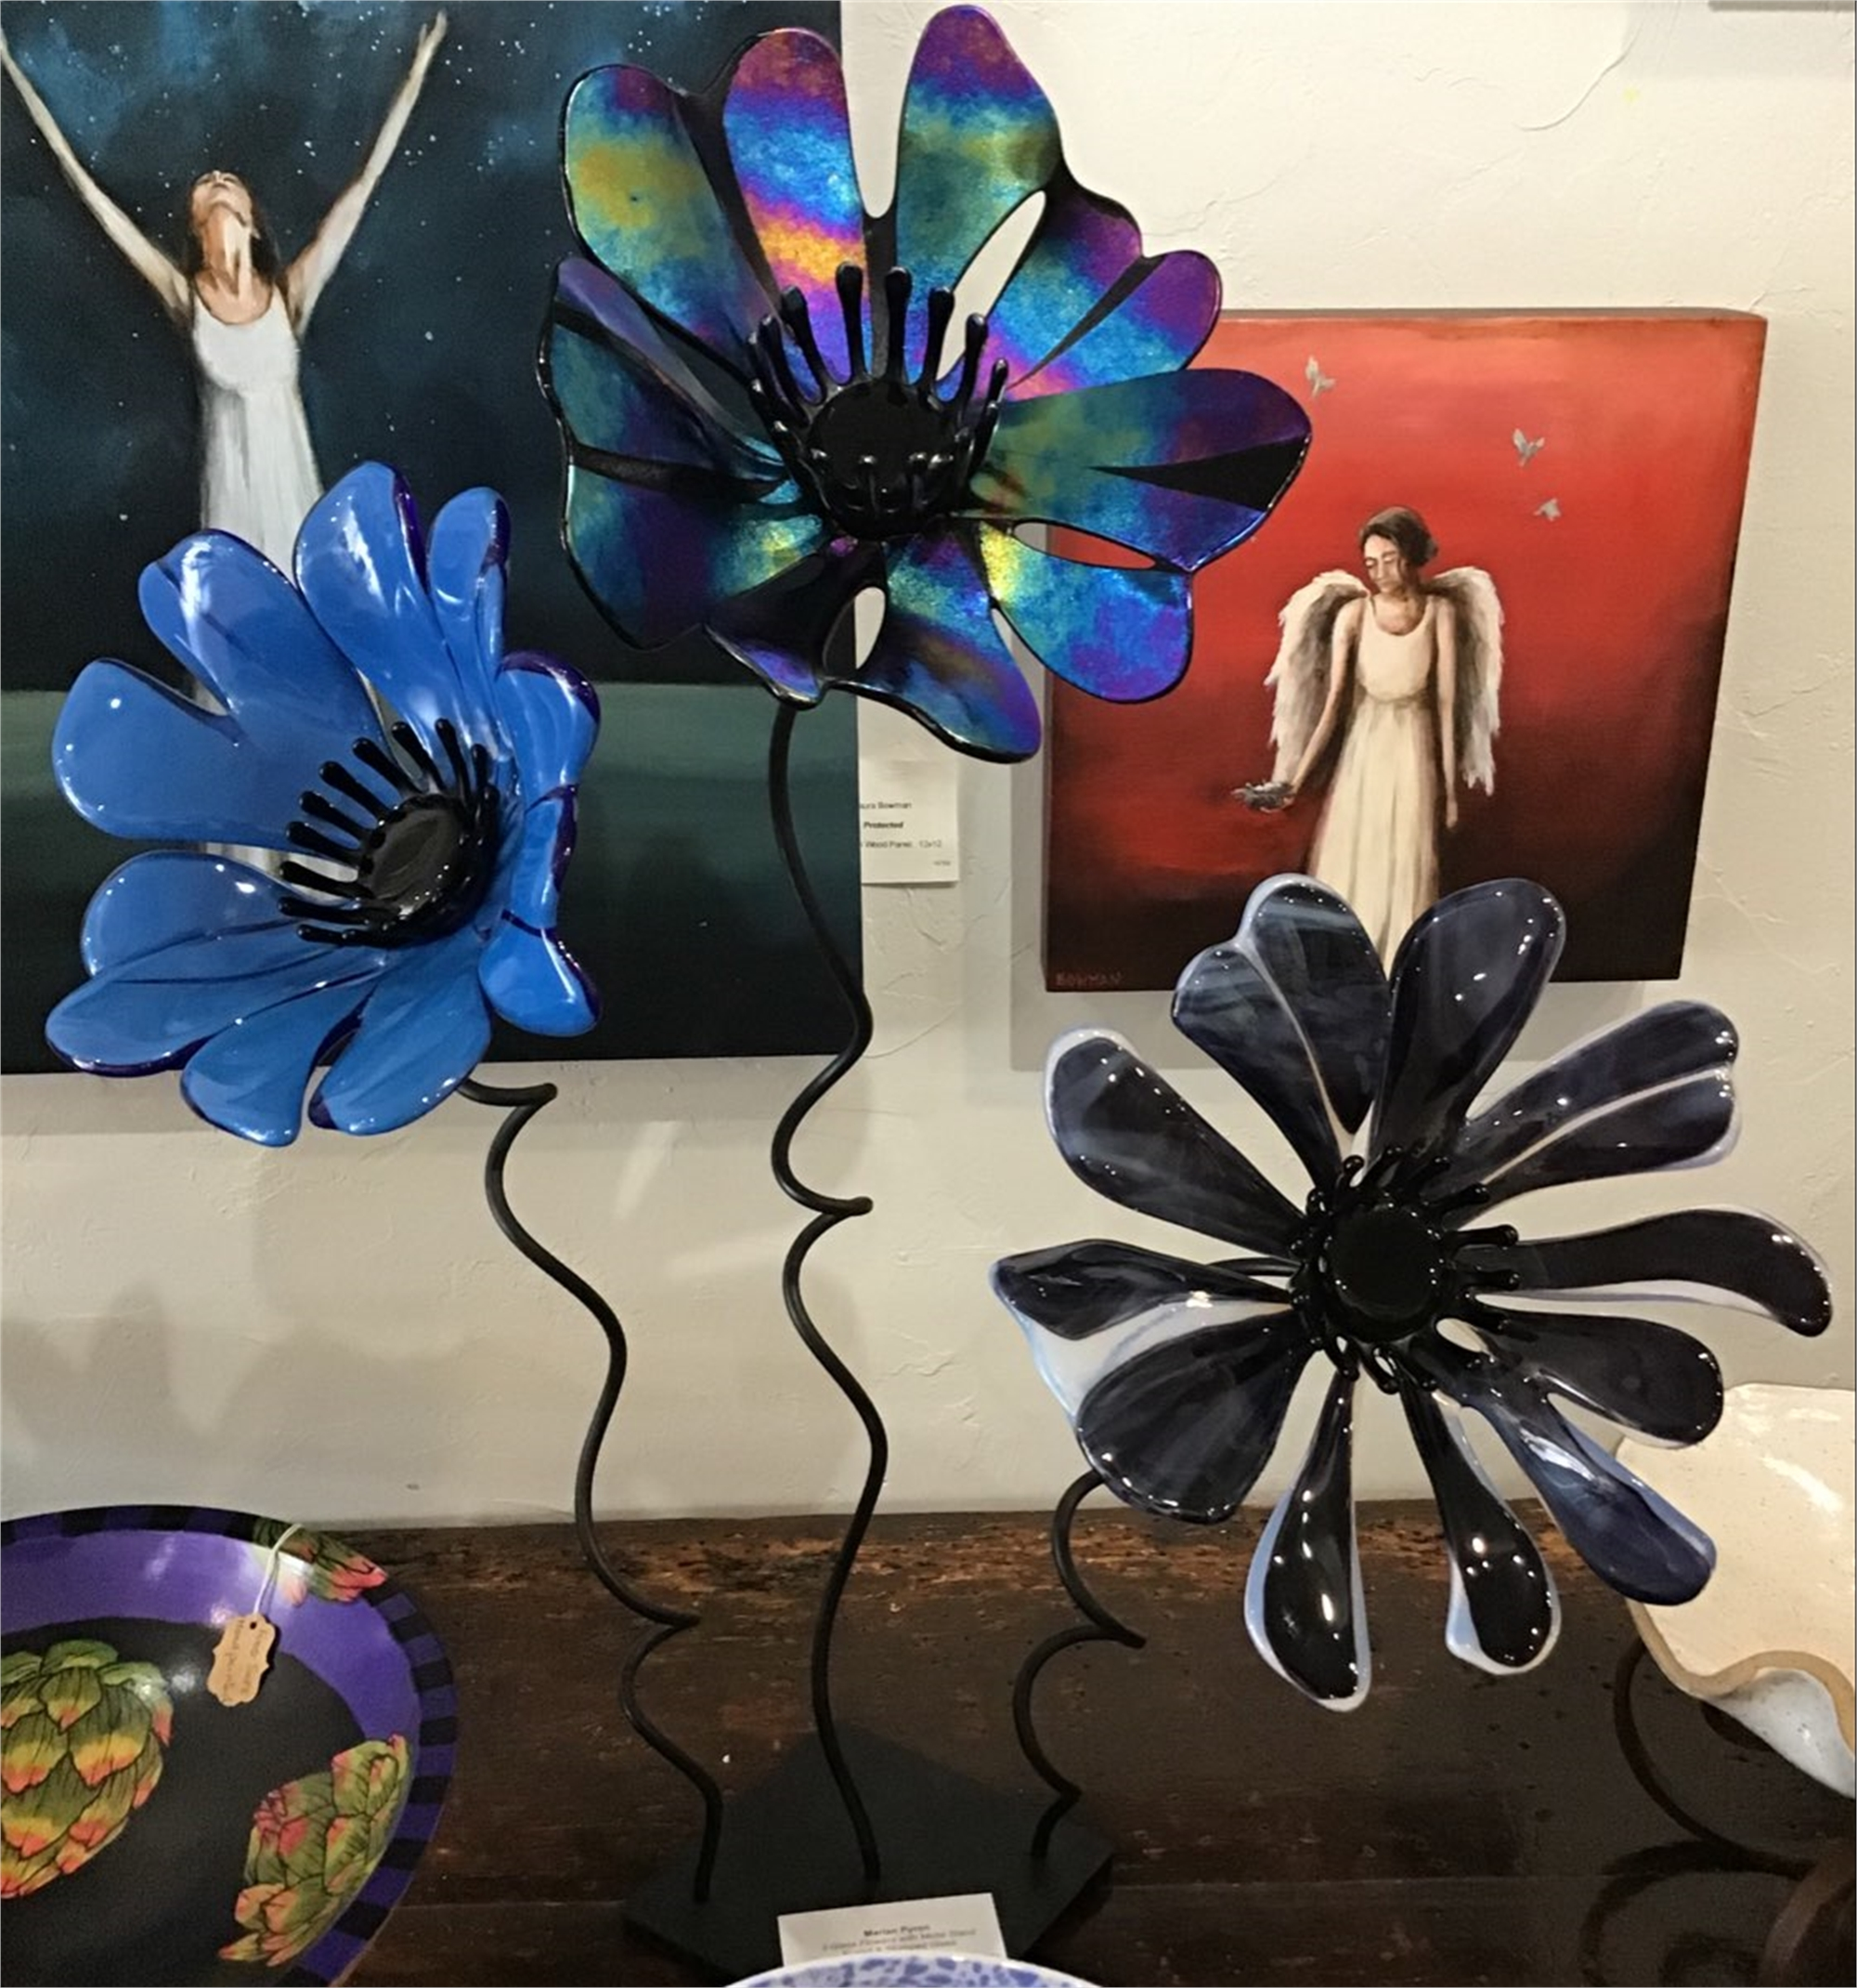 3 Glass Flowers with Metal Stand #2 by Marian Pyron